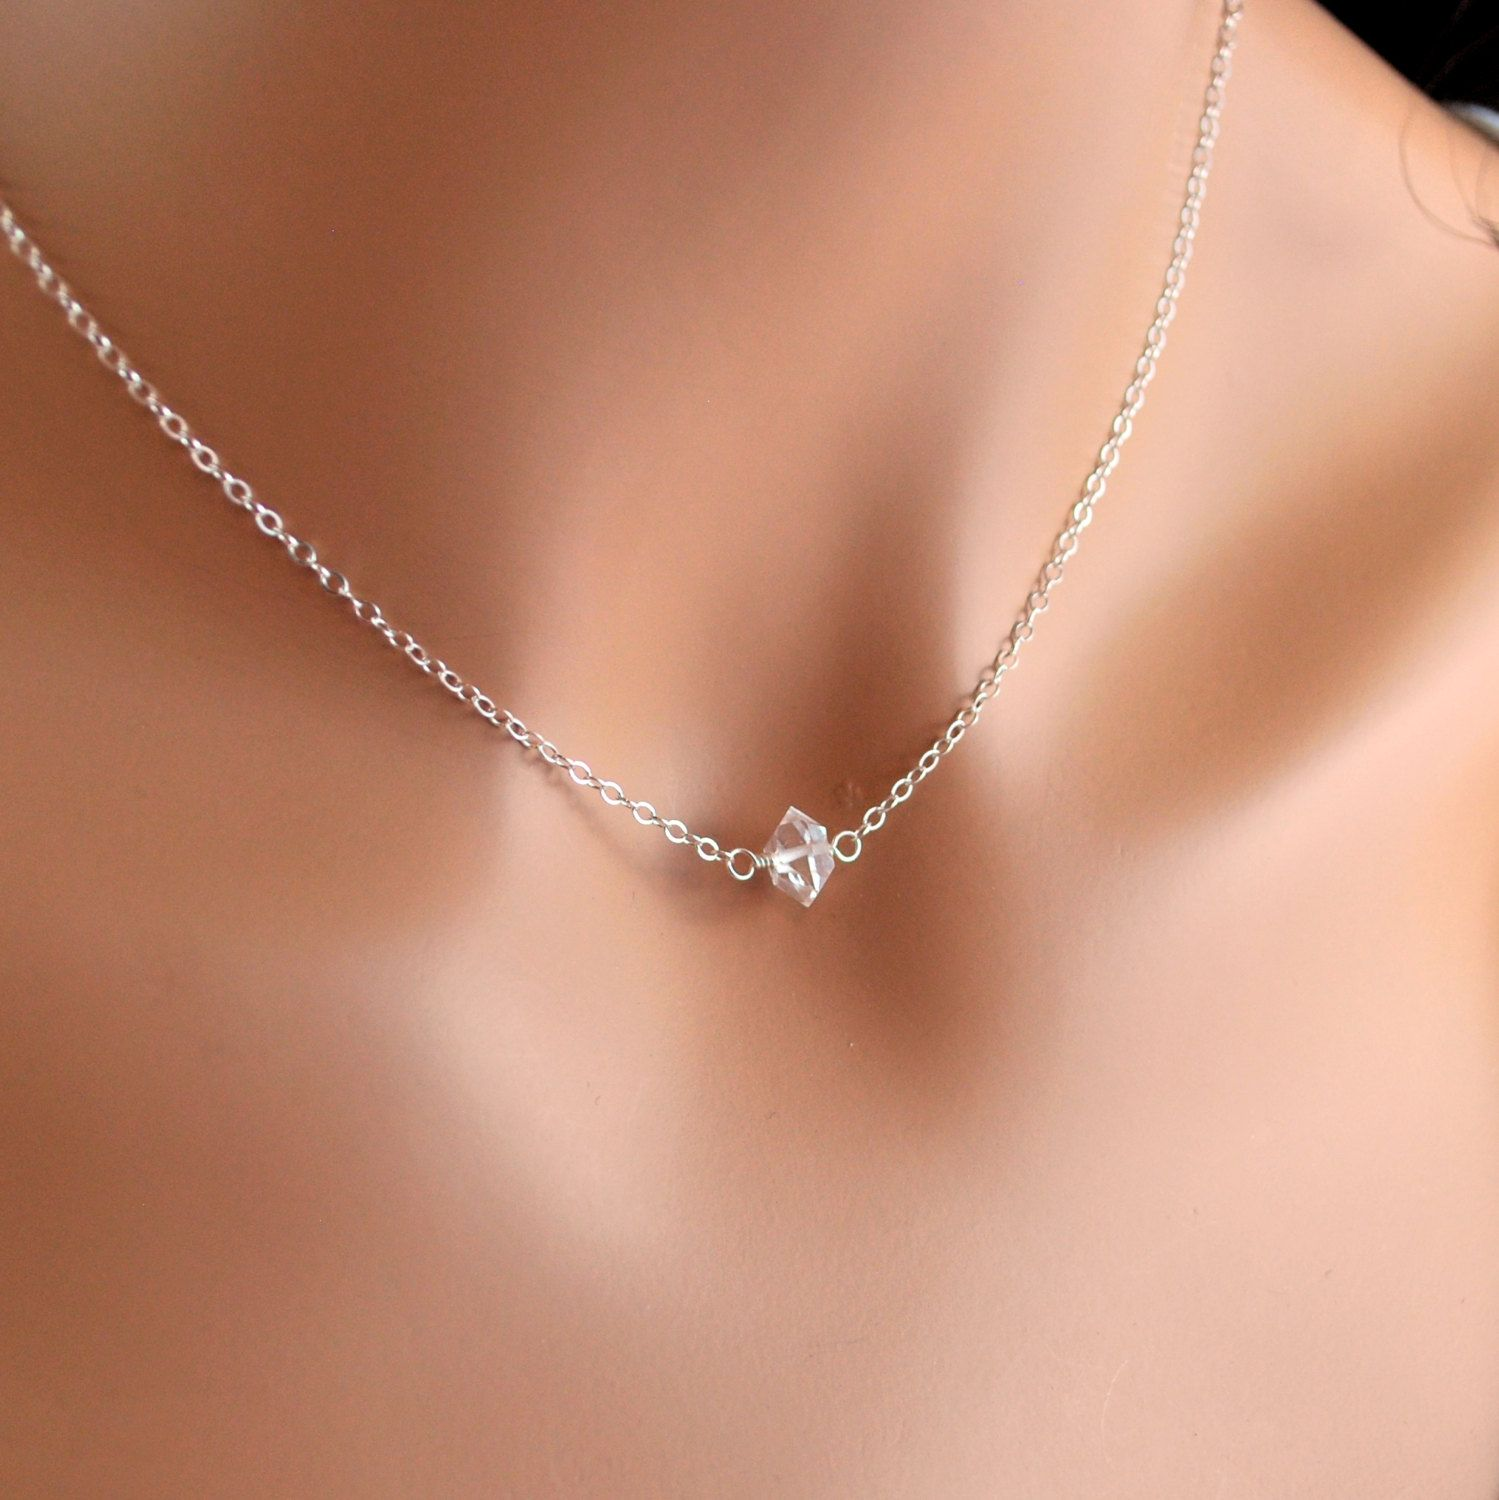 Love love loveeeee this necklace. Simplicity at its finest.